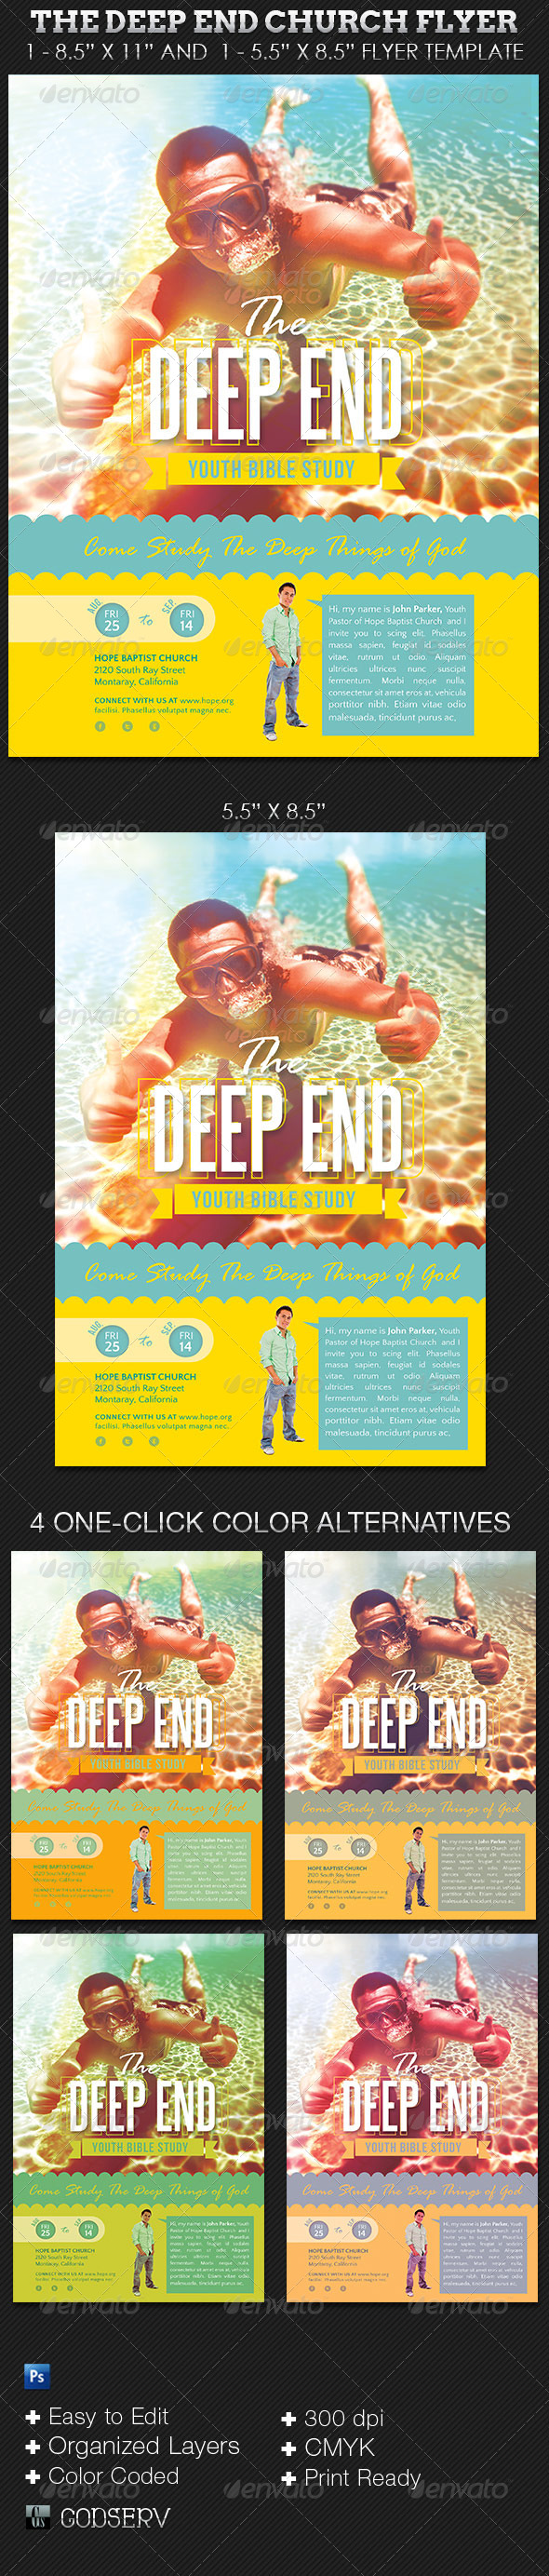 GraphicRiver The Deep End Youth Church Flyer Template 5691842